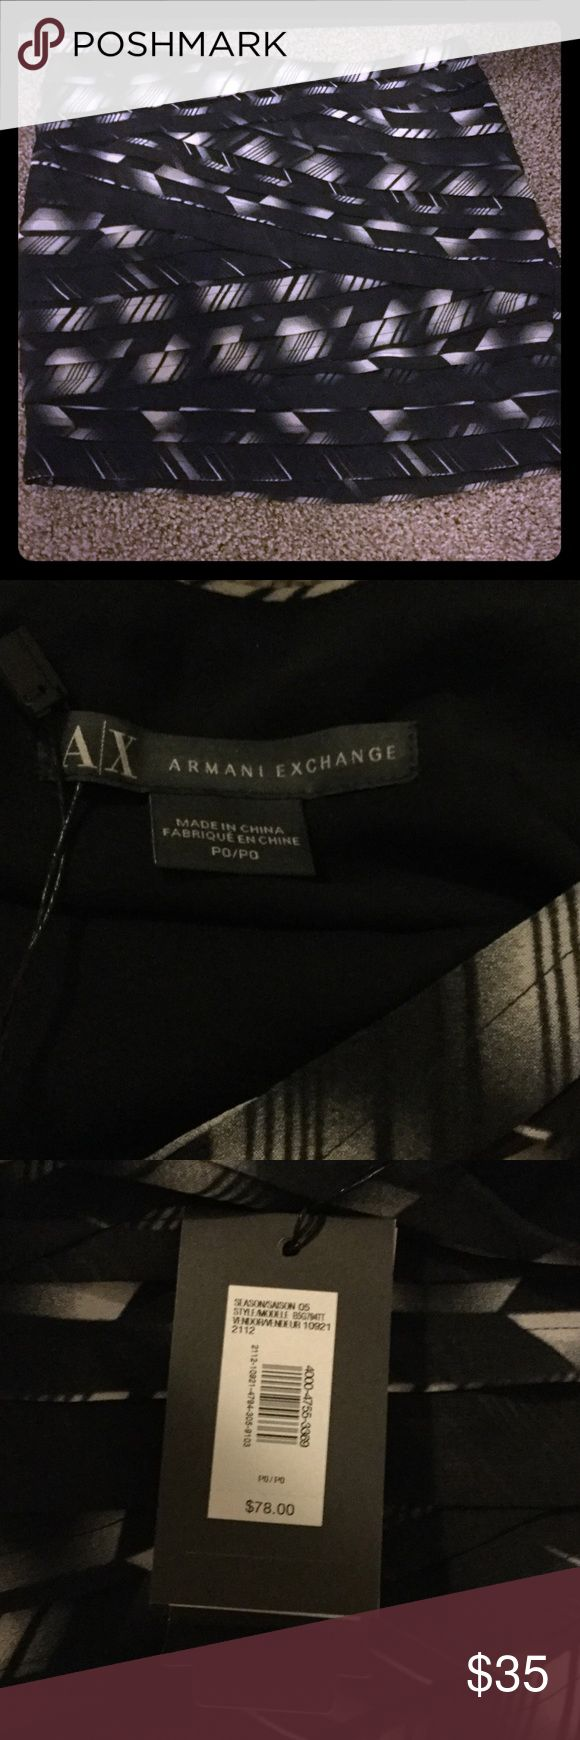 Darling mini skirt AX beautiful detail fully lined Back white pattern unique and so cool nicely crafted .. Armani Exchange size OP zip up hidden on side .. shell 100% polyester lining polyester and 5% spandex perfect staple to add to your closet 🌸 A/X Armani Exchange Skirts Mini